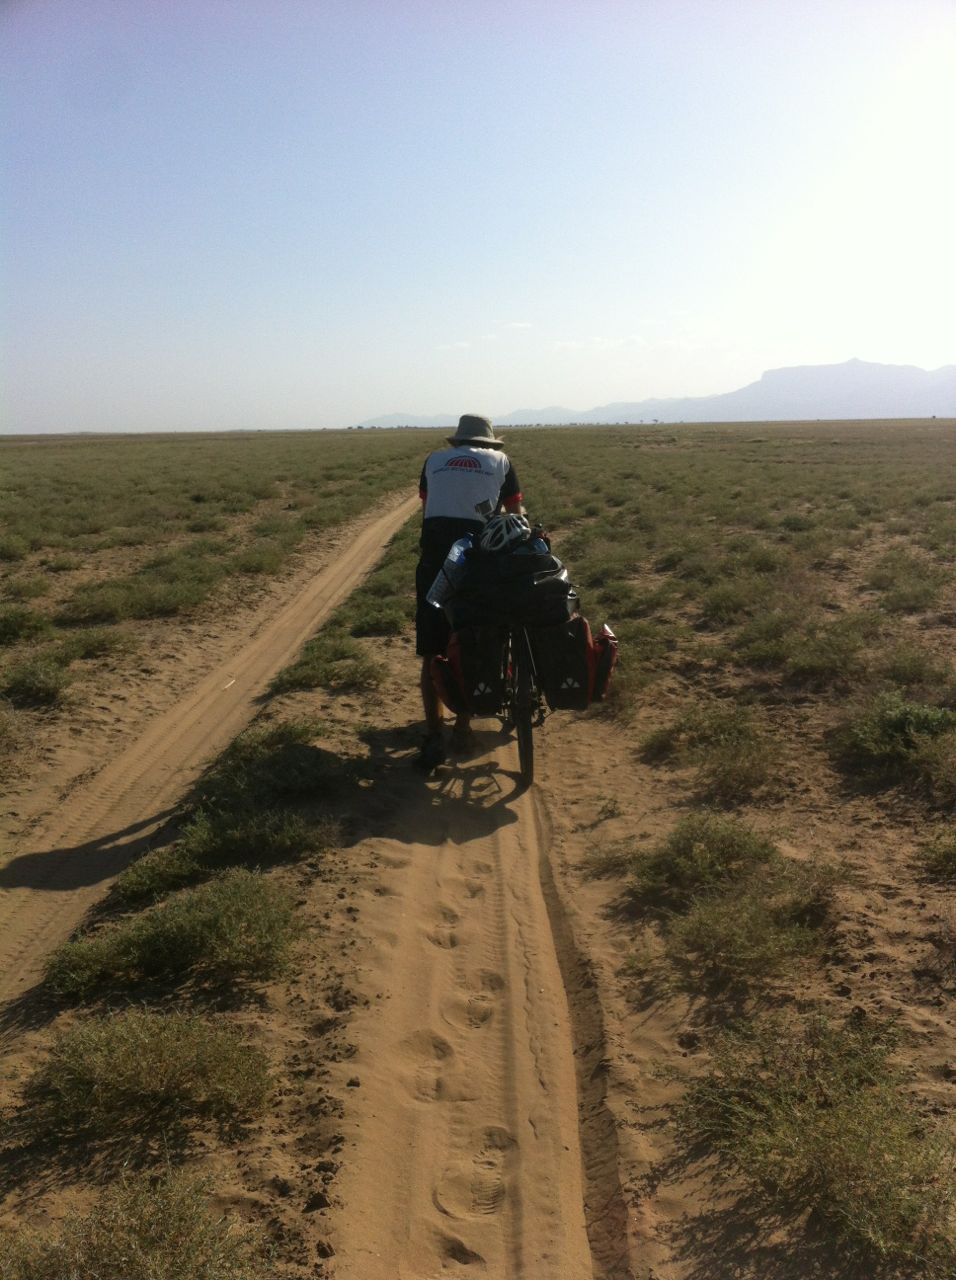 Hauling our bikes through the sand in the no-mans-land between Ethiopia, South Sudan and Kenya